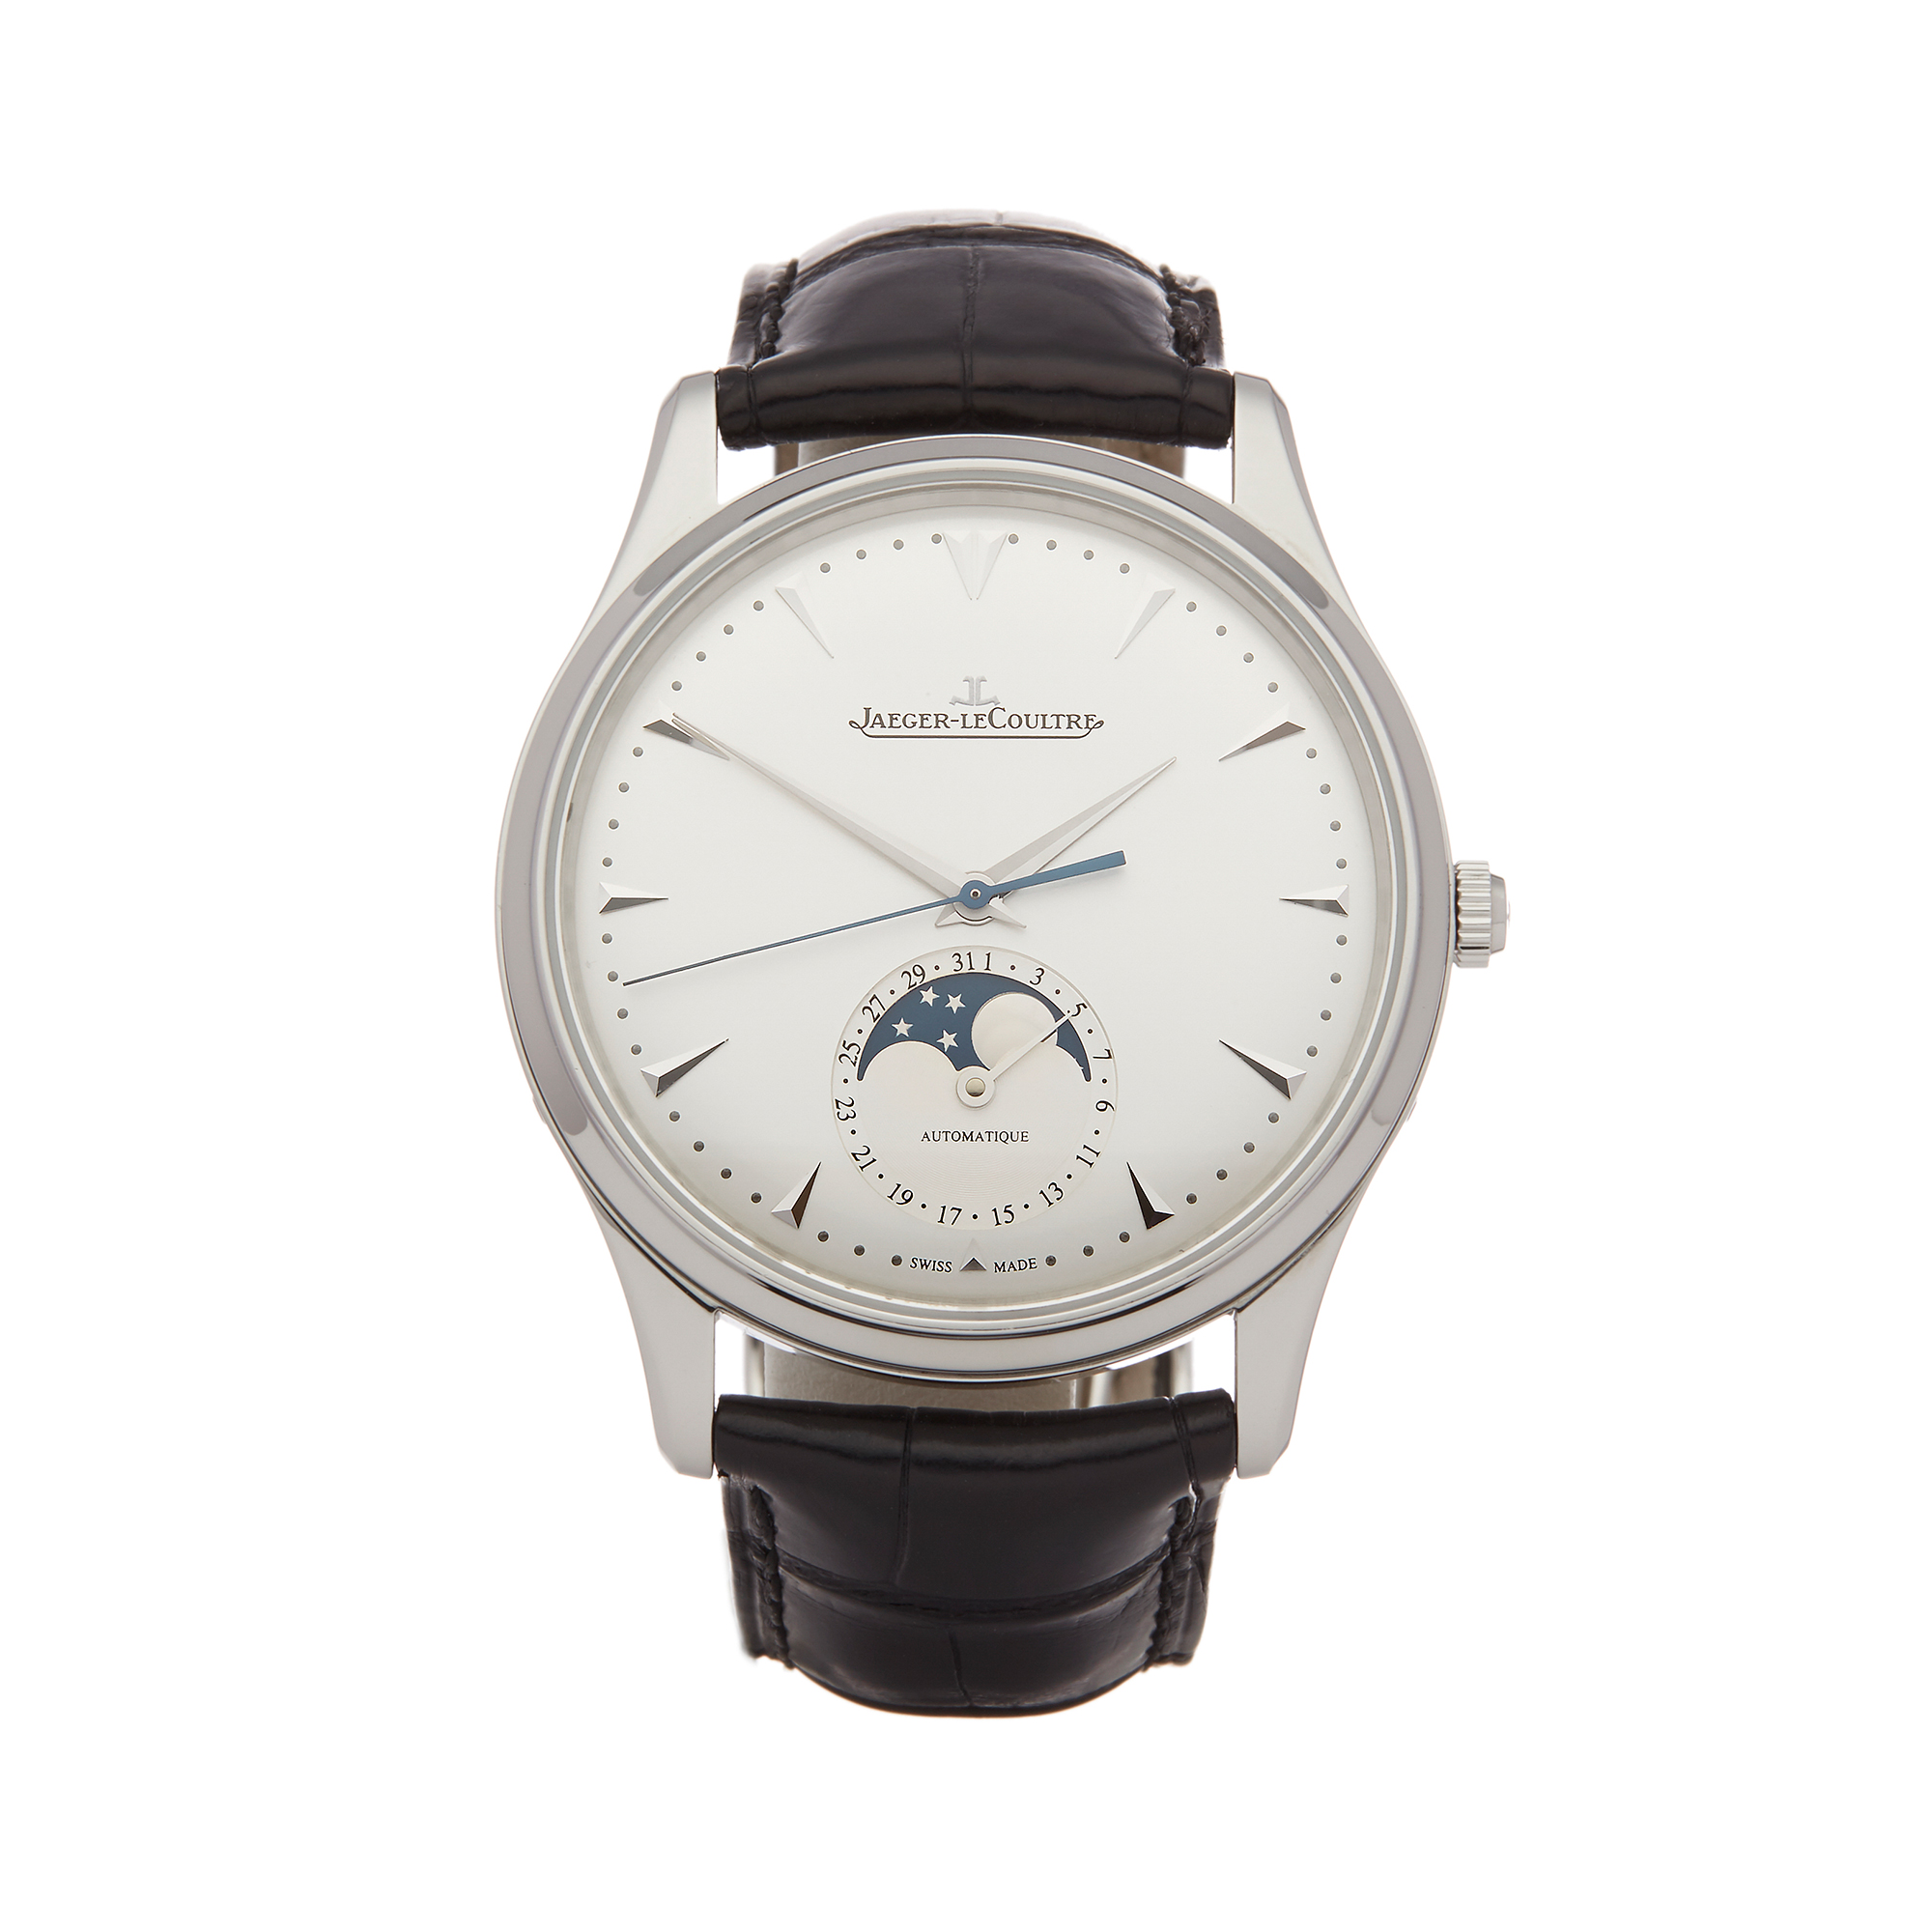 Jaeger-LeCoultre Master Ultra Thin Q1368420 Men Stainless Steel Watch - Image 8 of 8